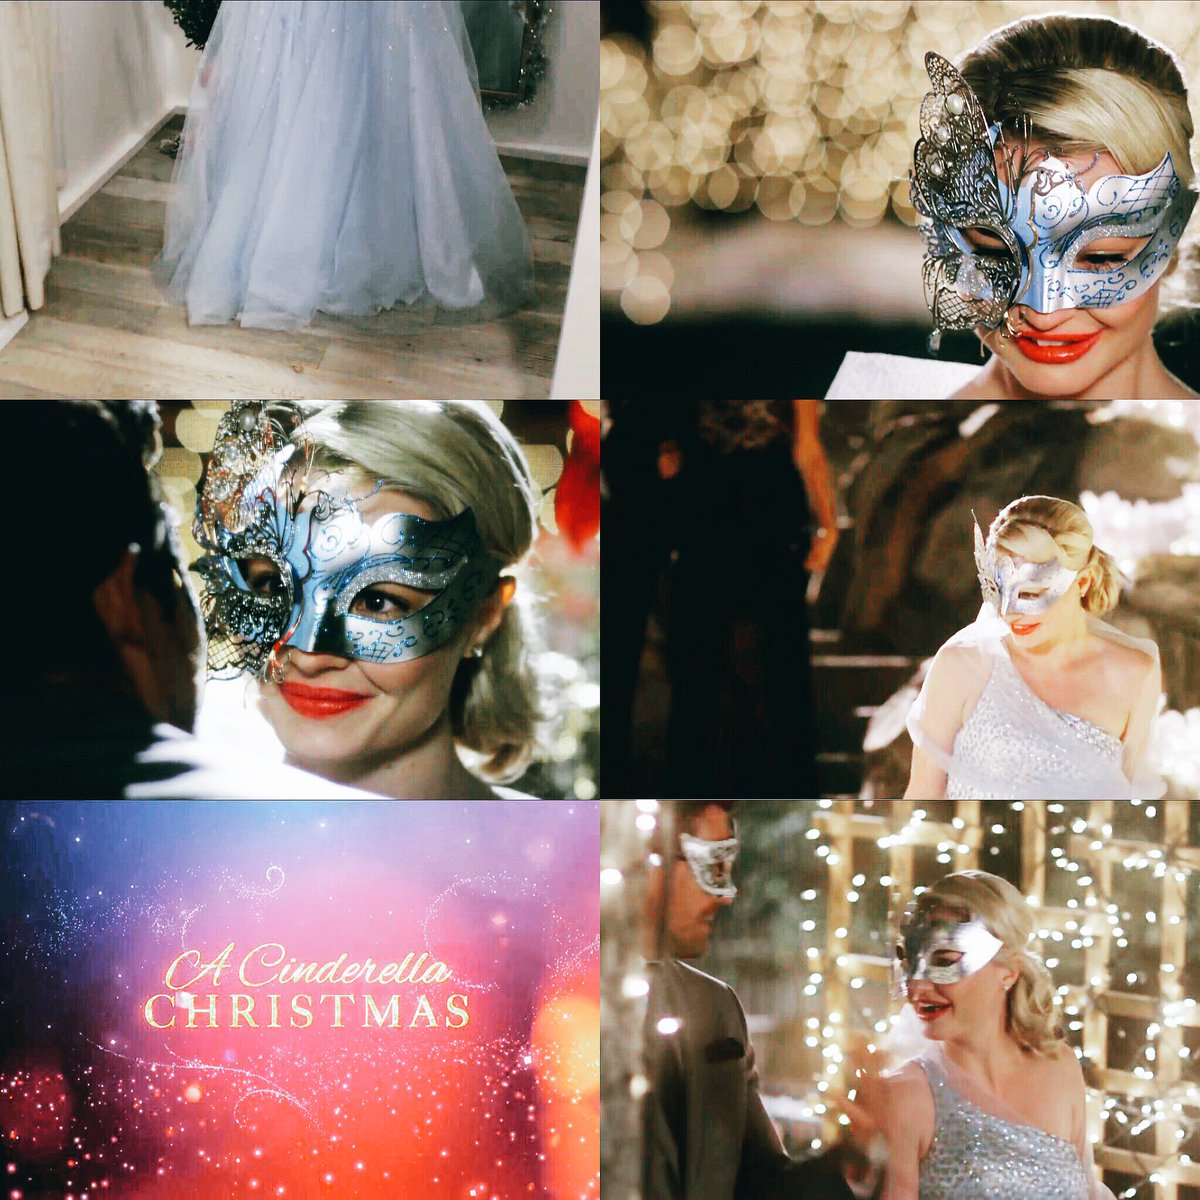 A Cinderella Christmas.Books Movies On Twitter Emma Rigby In 𝒜